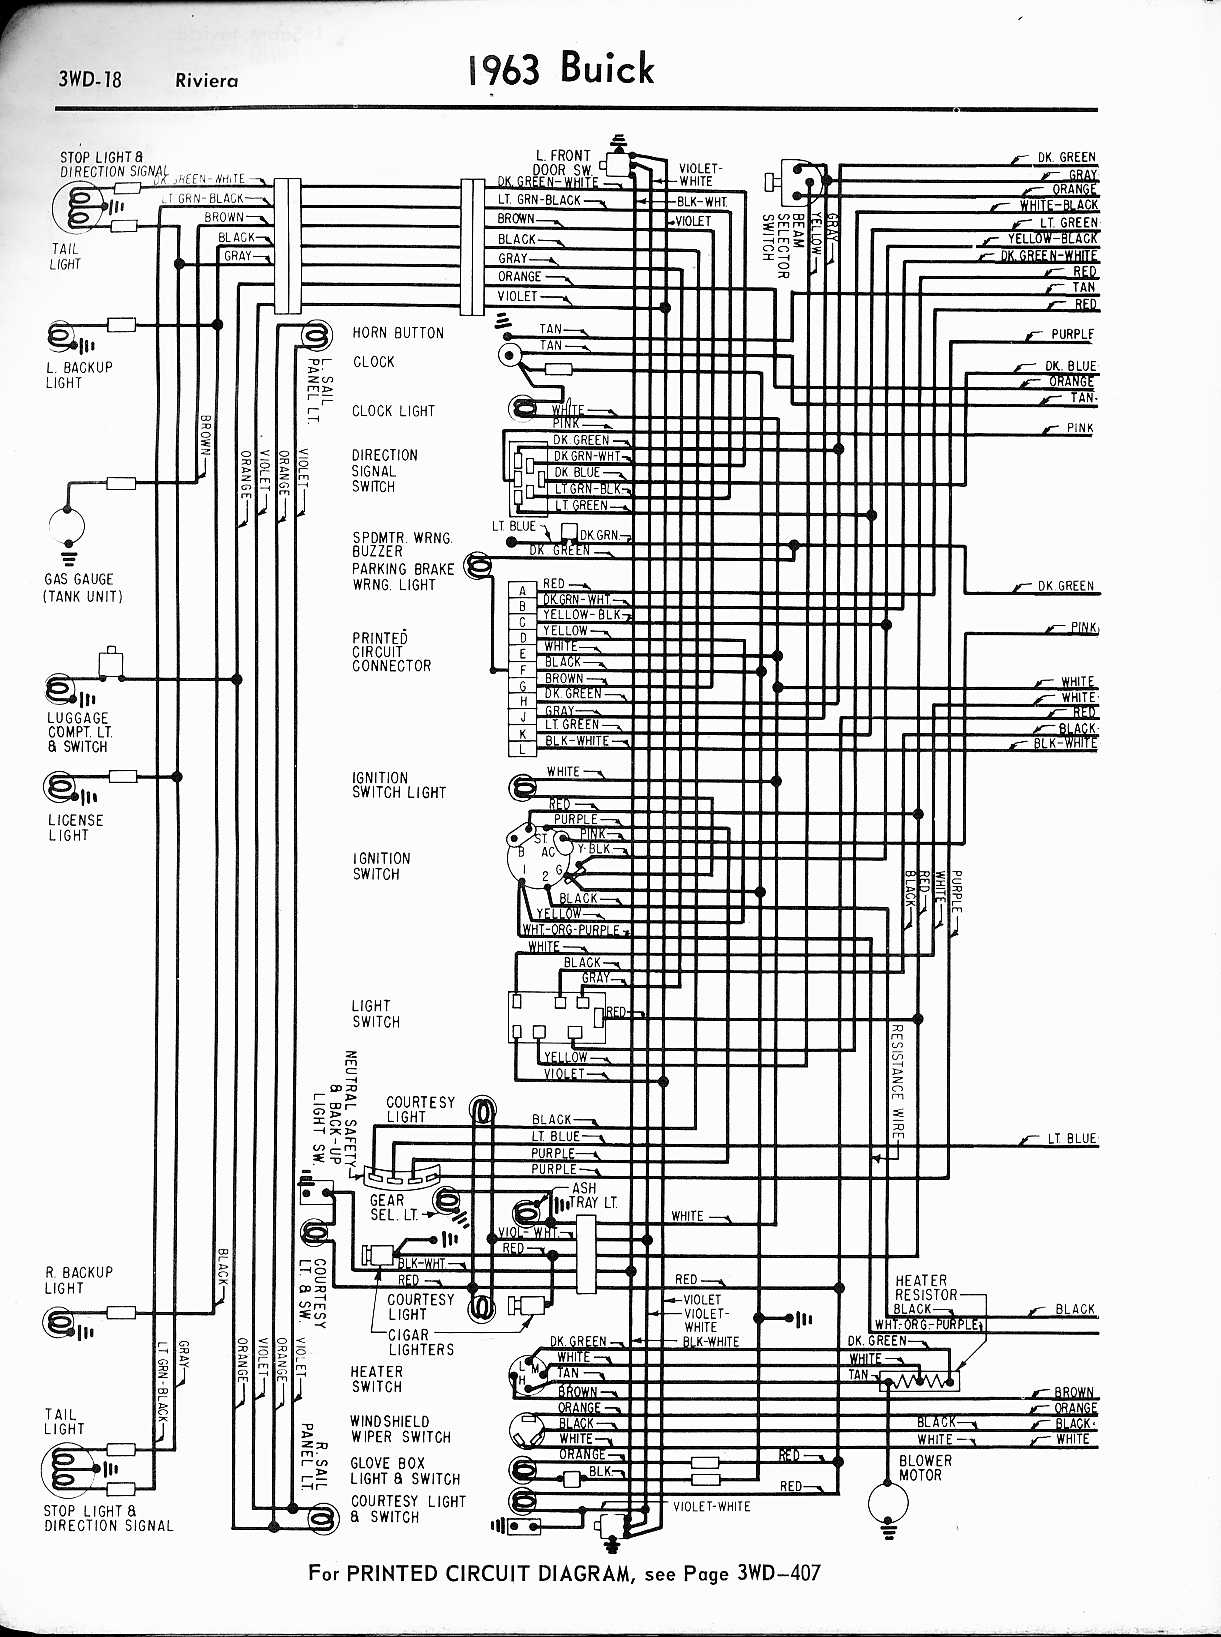 [WLLP_2054]   Buick Riviera Wiring To Battery Diagram - 66 Mustang Radio Wiring for Wiring  Diagram Schematics | Buick Riviera Wiring Diagram |  | Wiring Diagram and Schematics